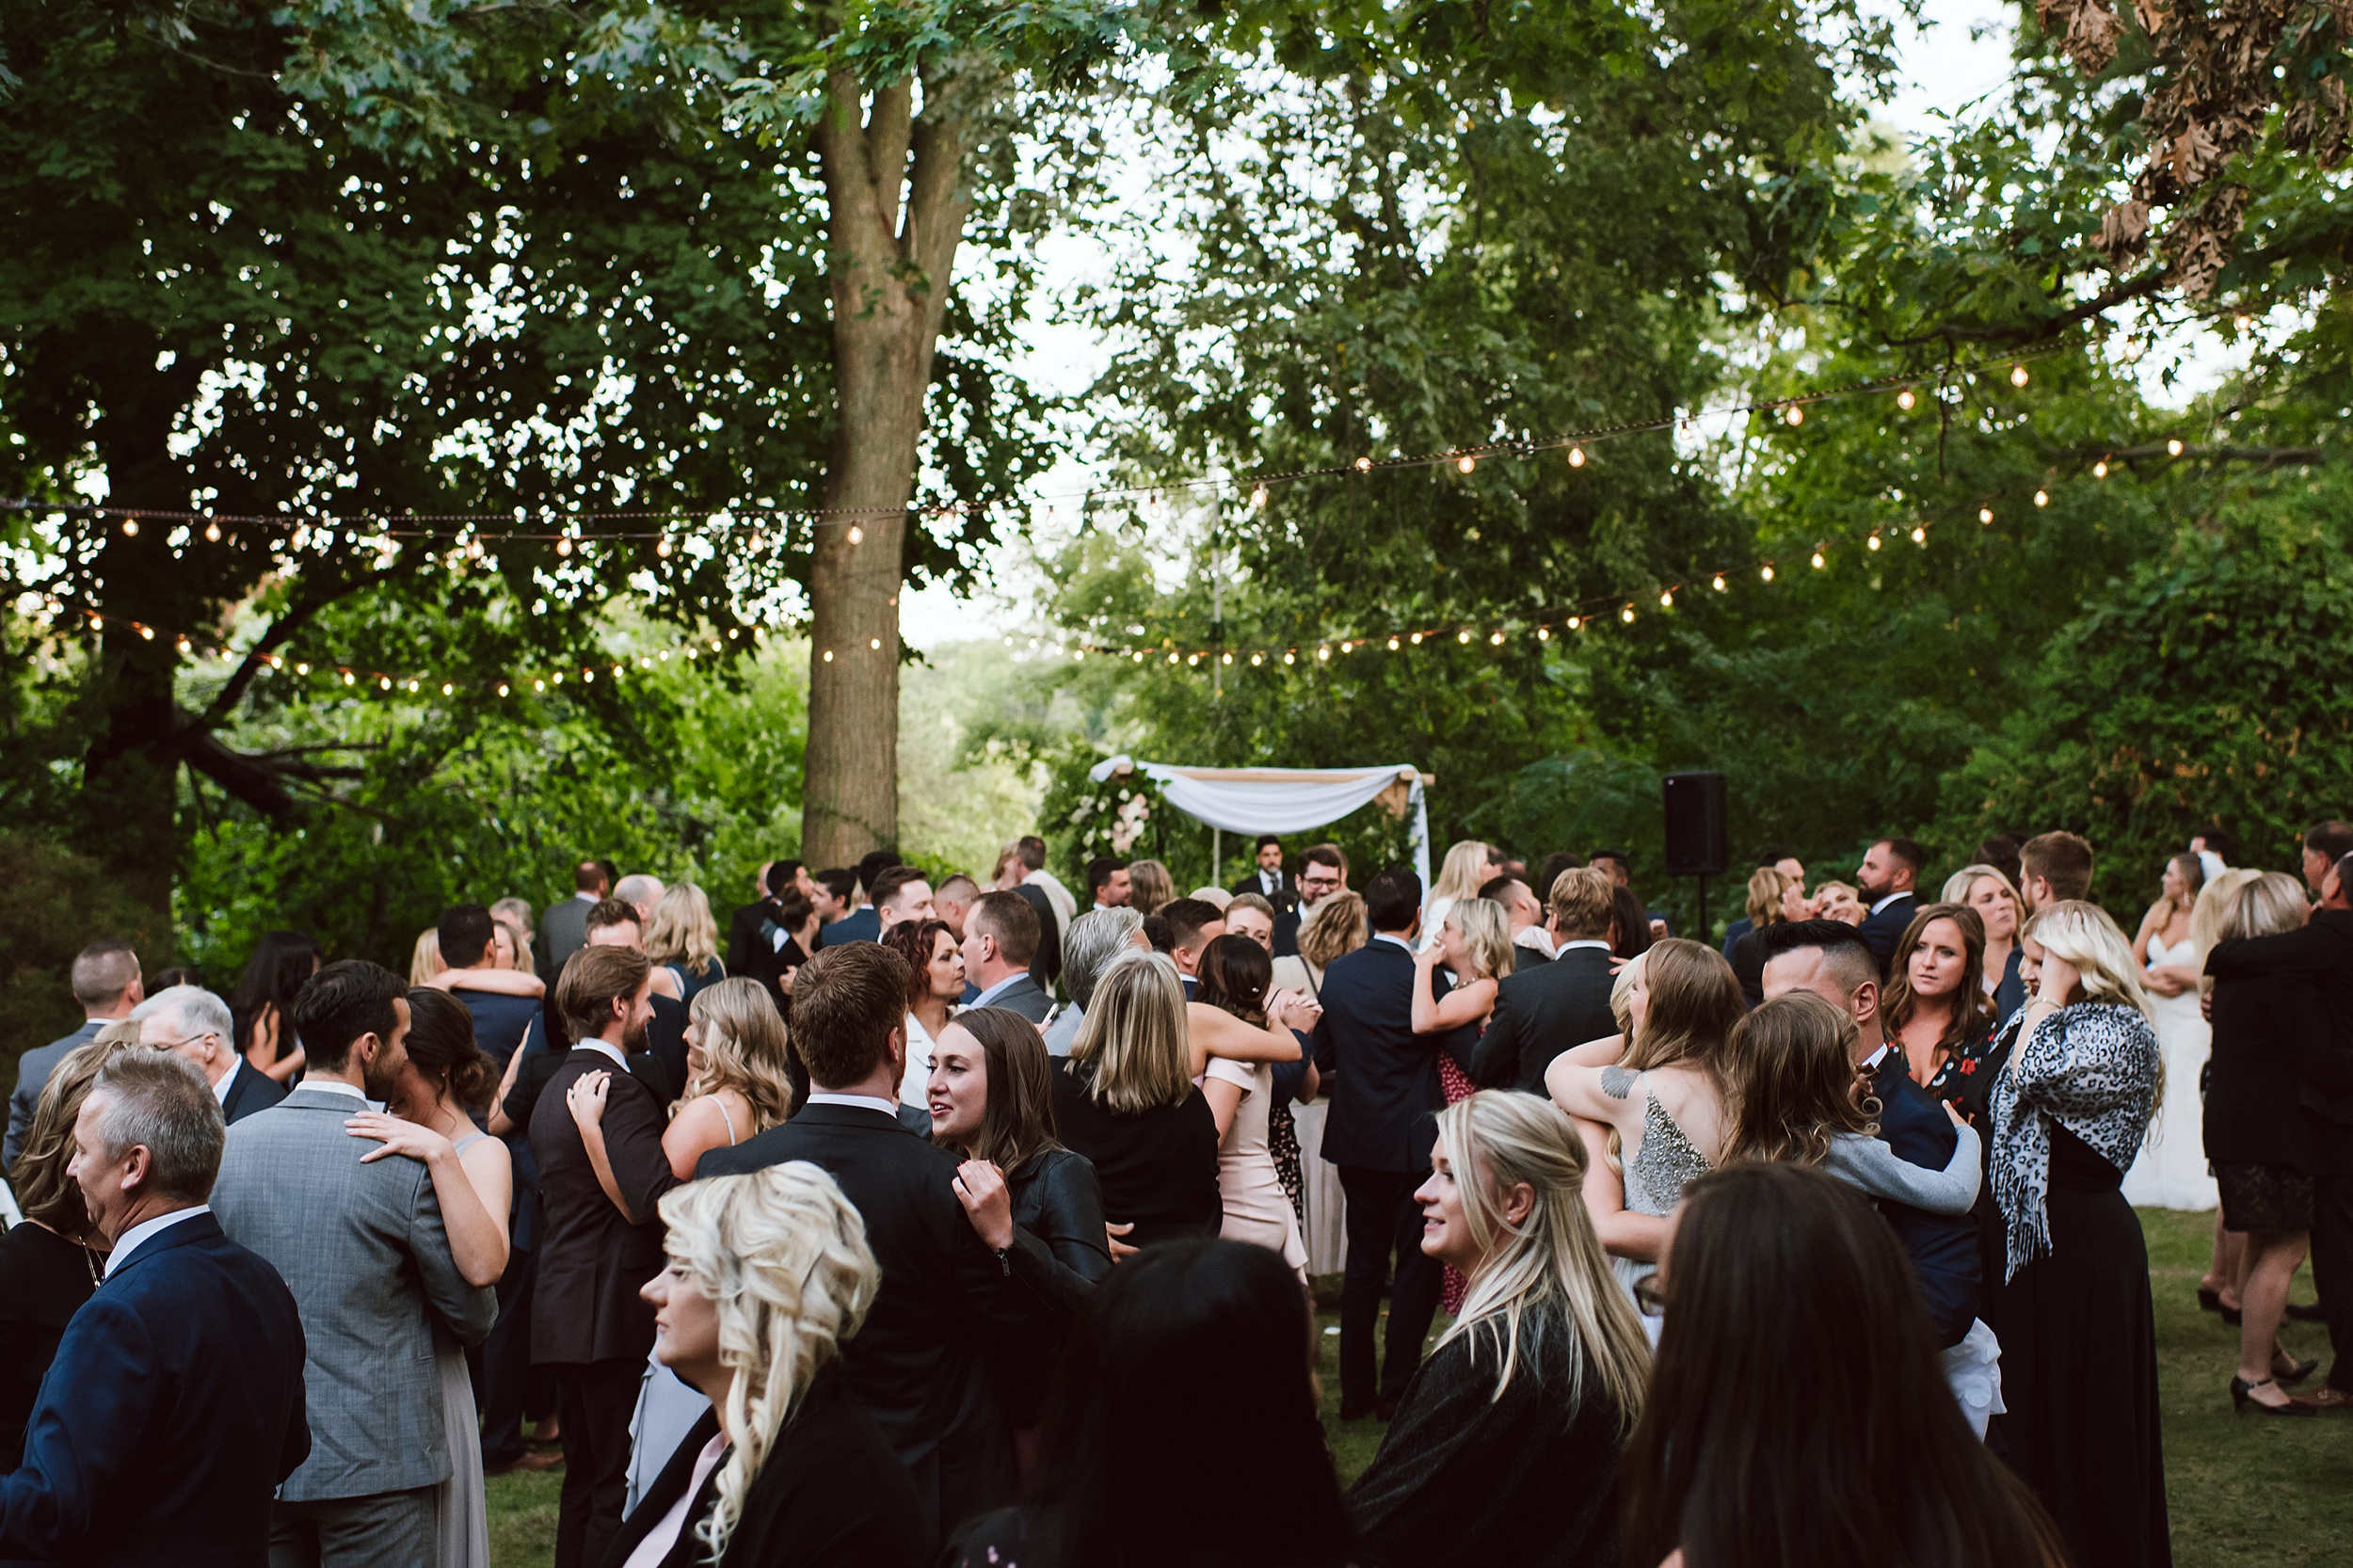 Rustic_Backyard_Wedding_Toronto_Photographer135.jpg